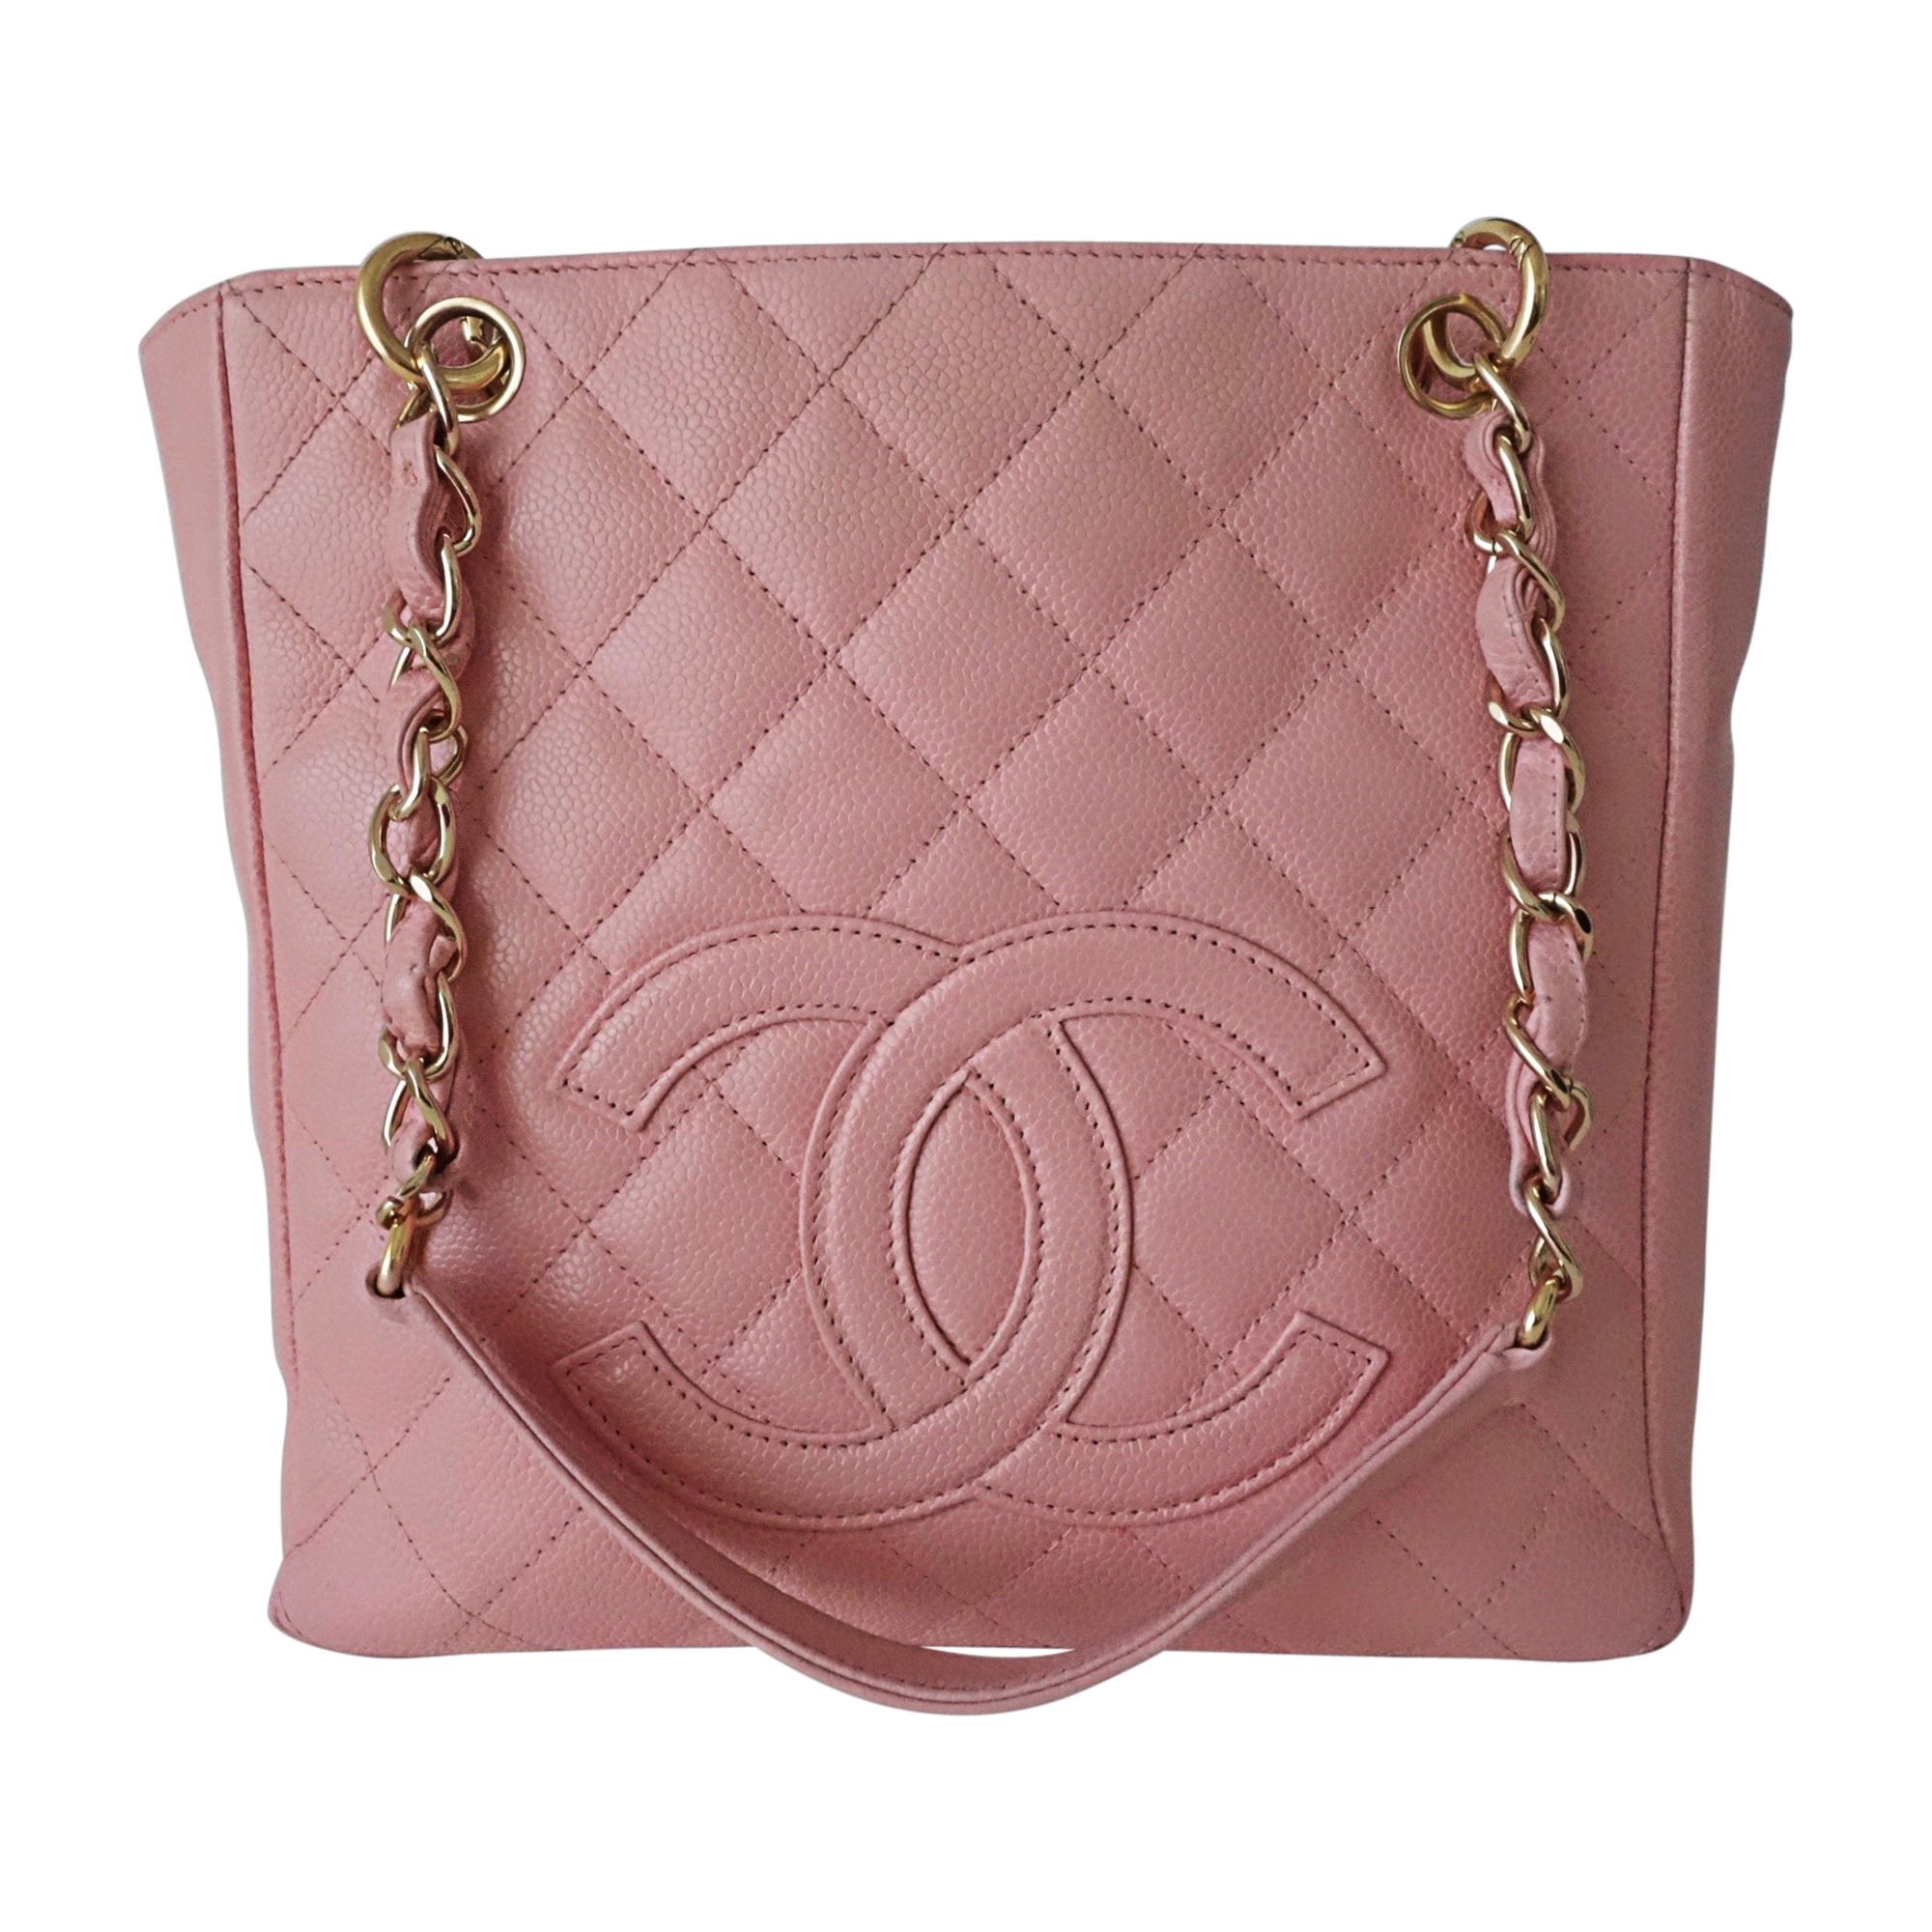 Sac à main en cuir CHANEL Shopping Rose, fuschia, vieux rose